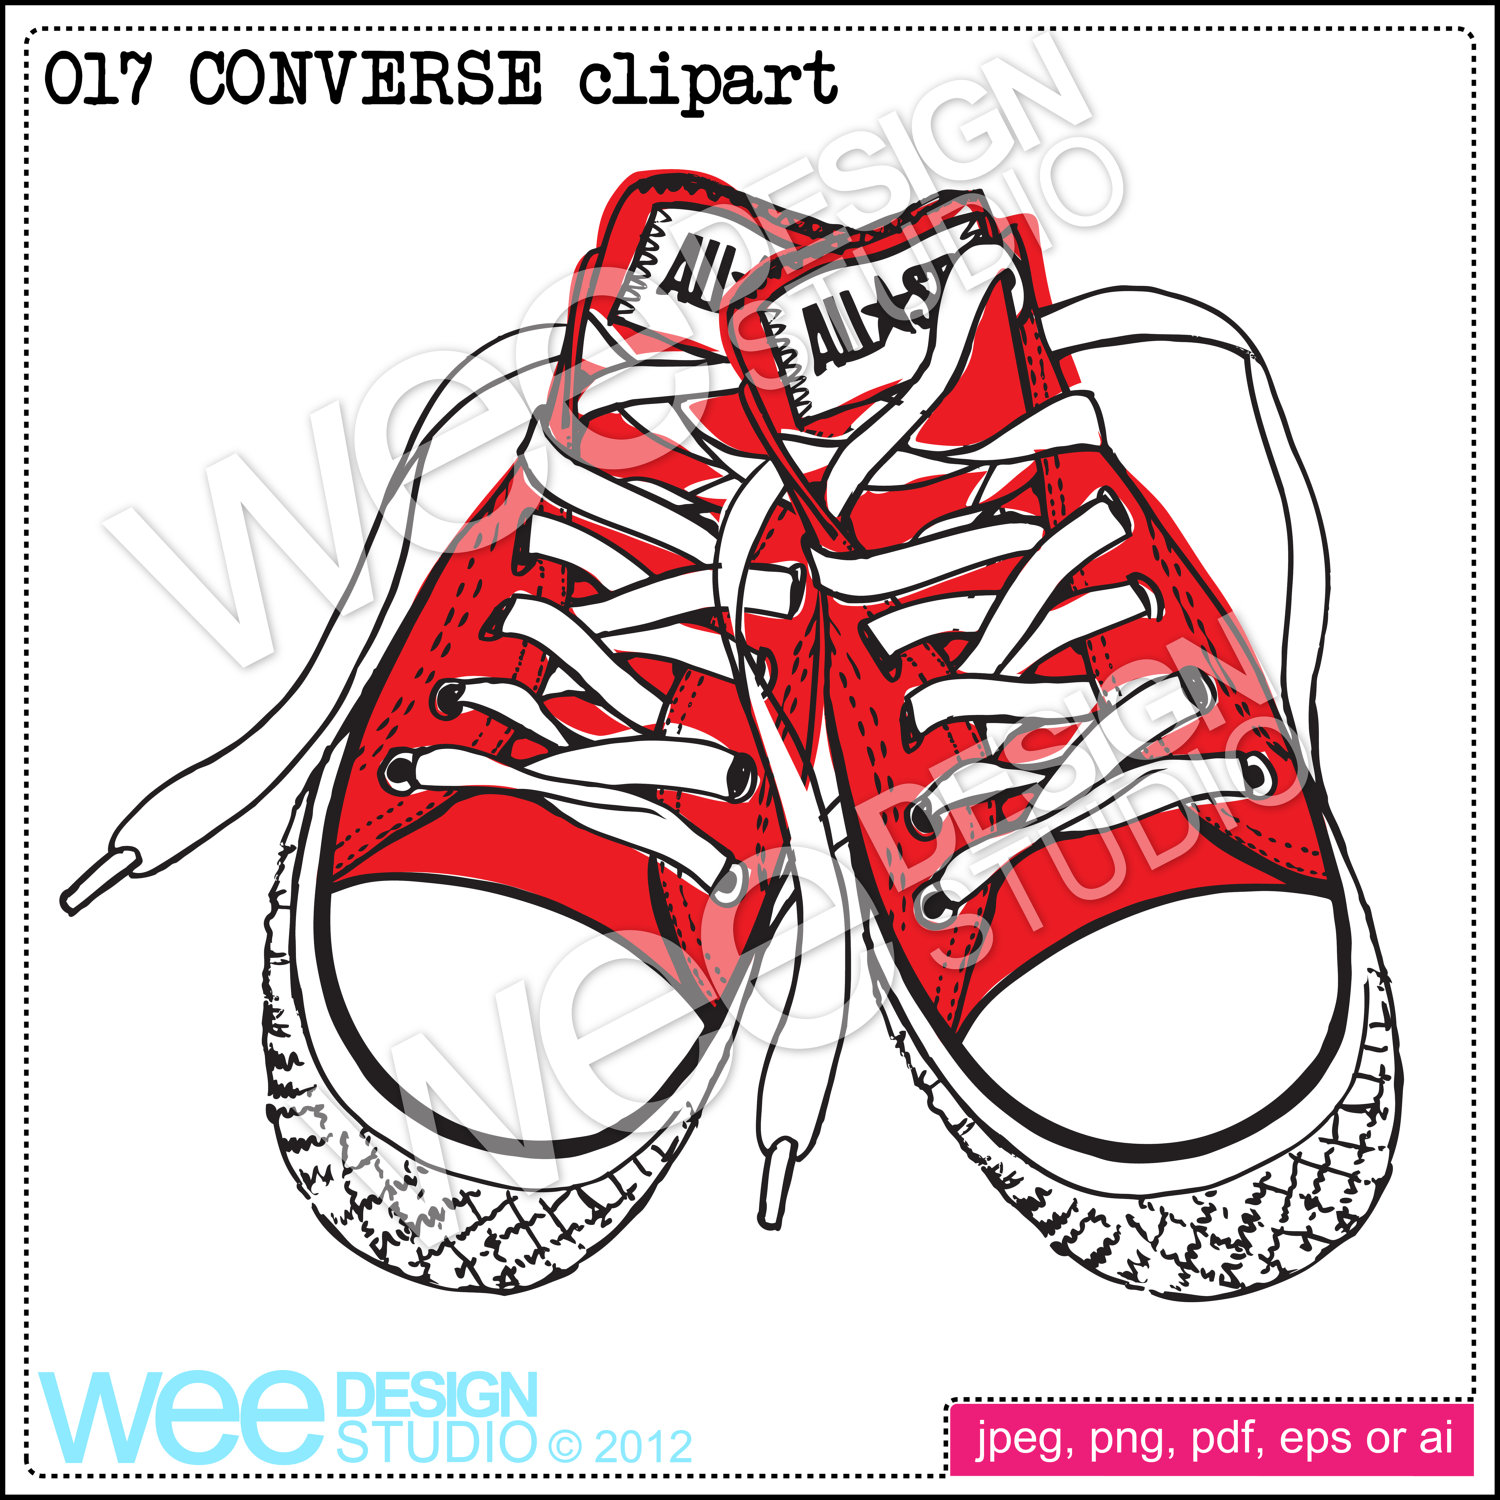 Drawn shoe Png Like sneakers & digital